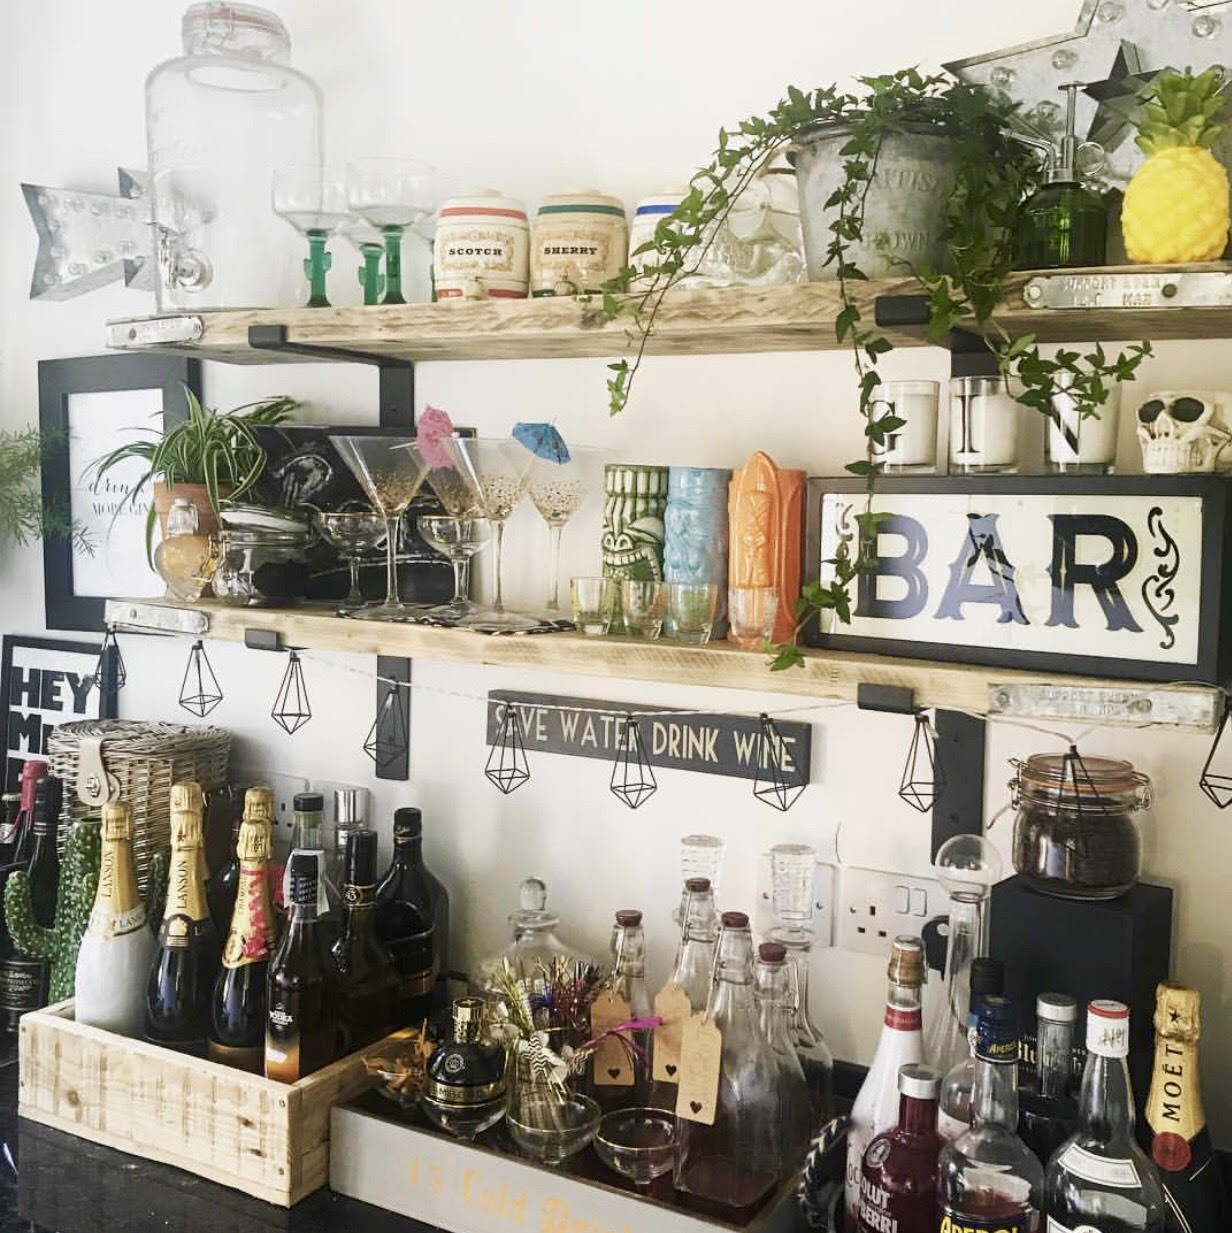 Zara has used rustic wood shelves and crates for the glasses and to store the booze in her bar area..... Add to this lighting, plants and accessories and you have a fabulous modern rustic home bar!    @zaraplus3